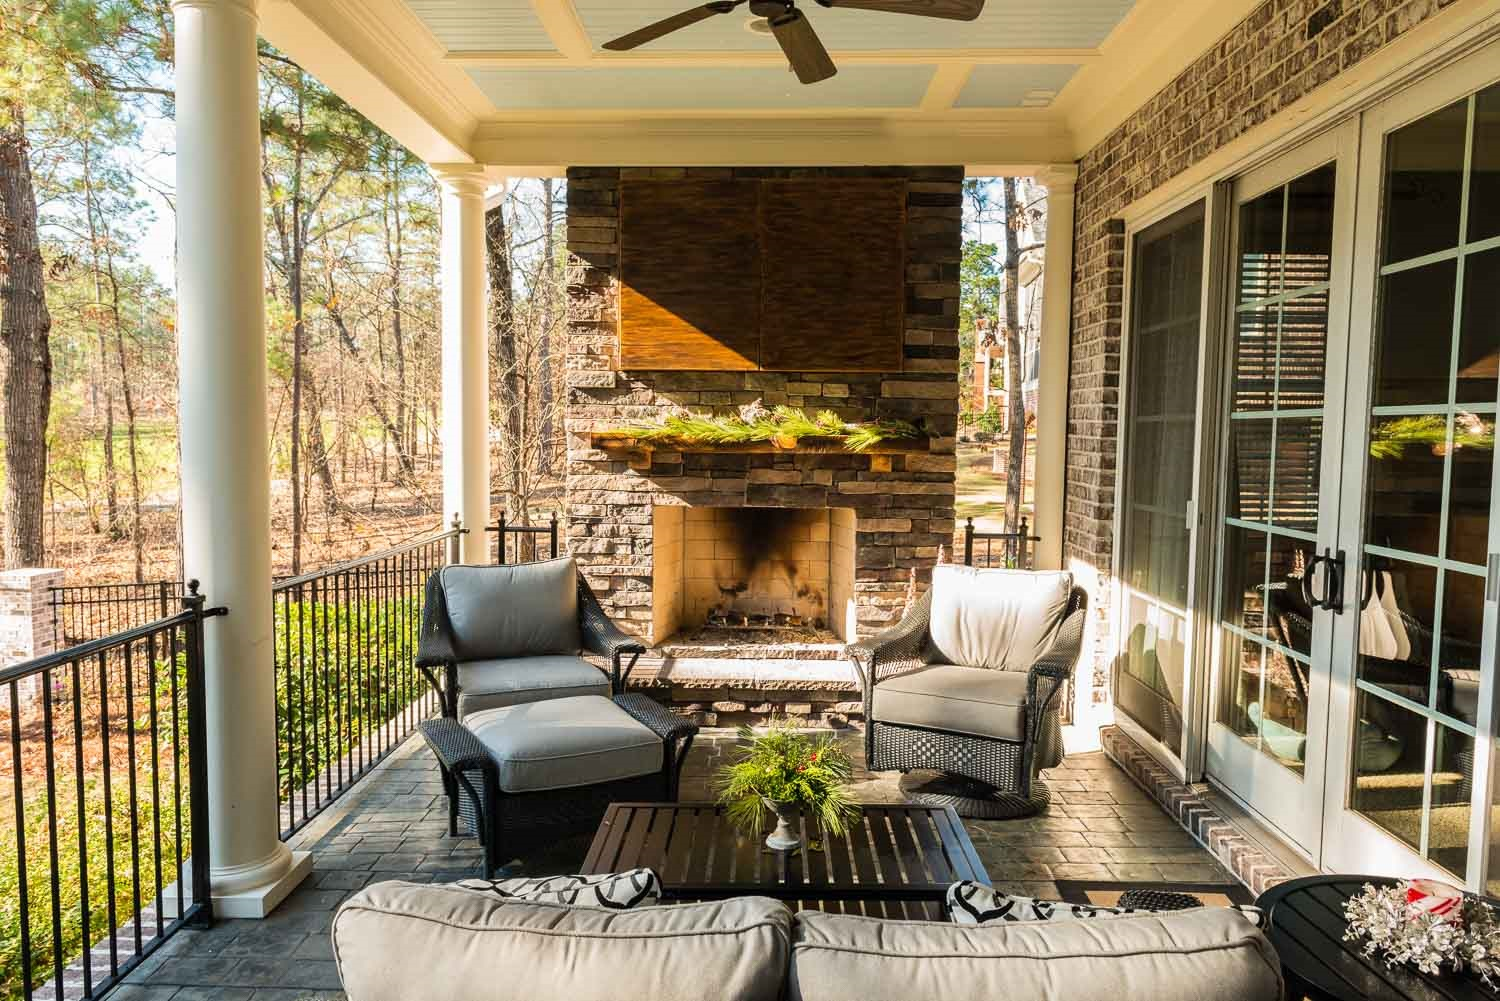 We are Your Source for Upscale, Unique Outdoor Living ... on Unique Outdoor Living id=70204